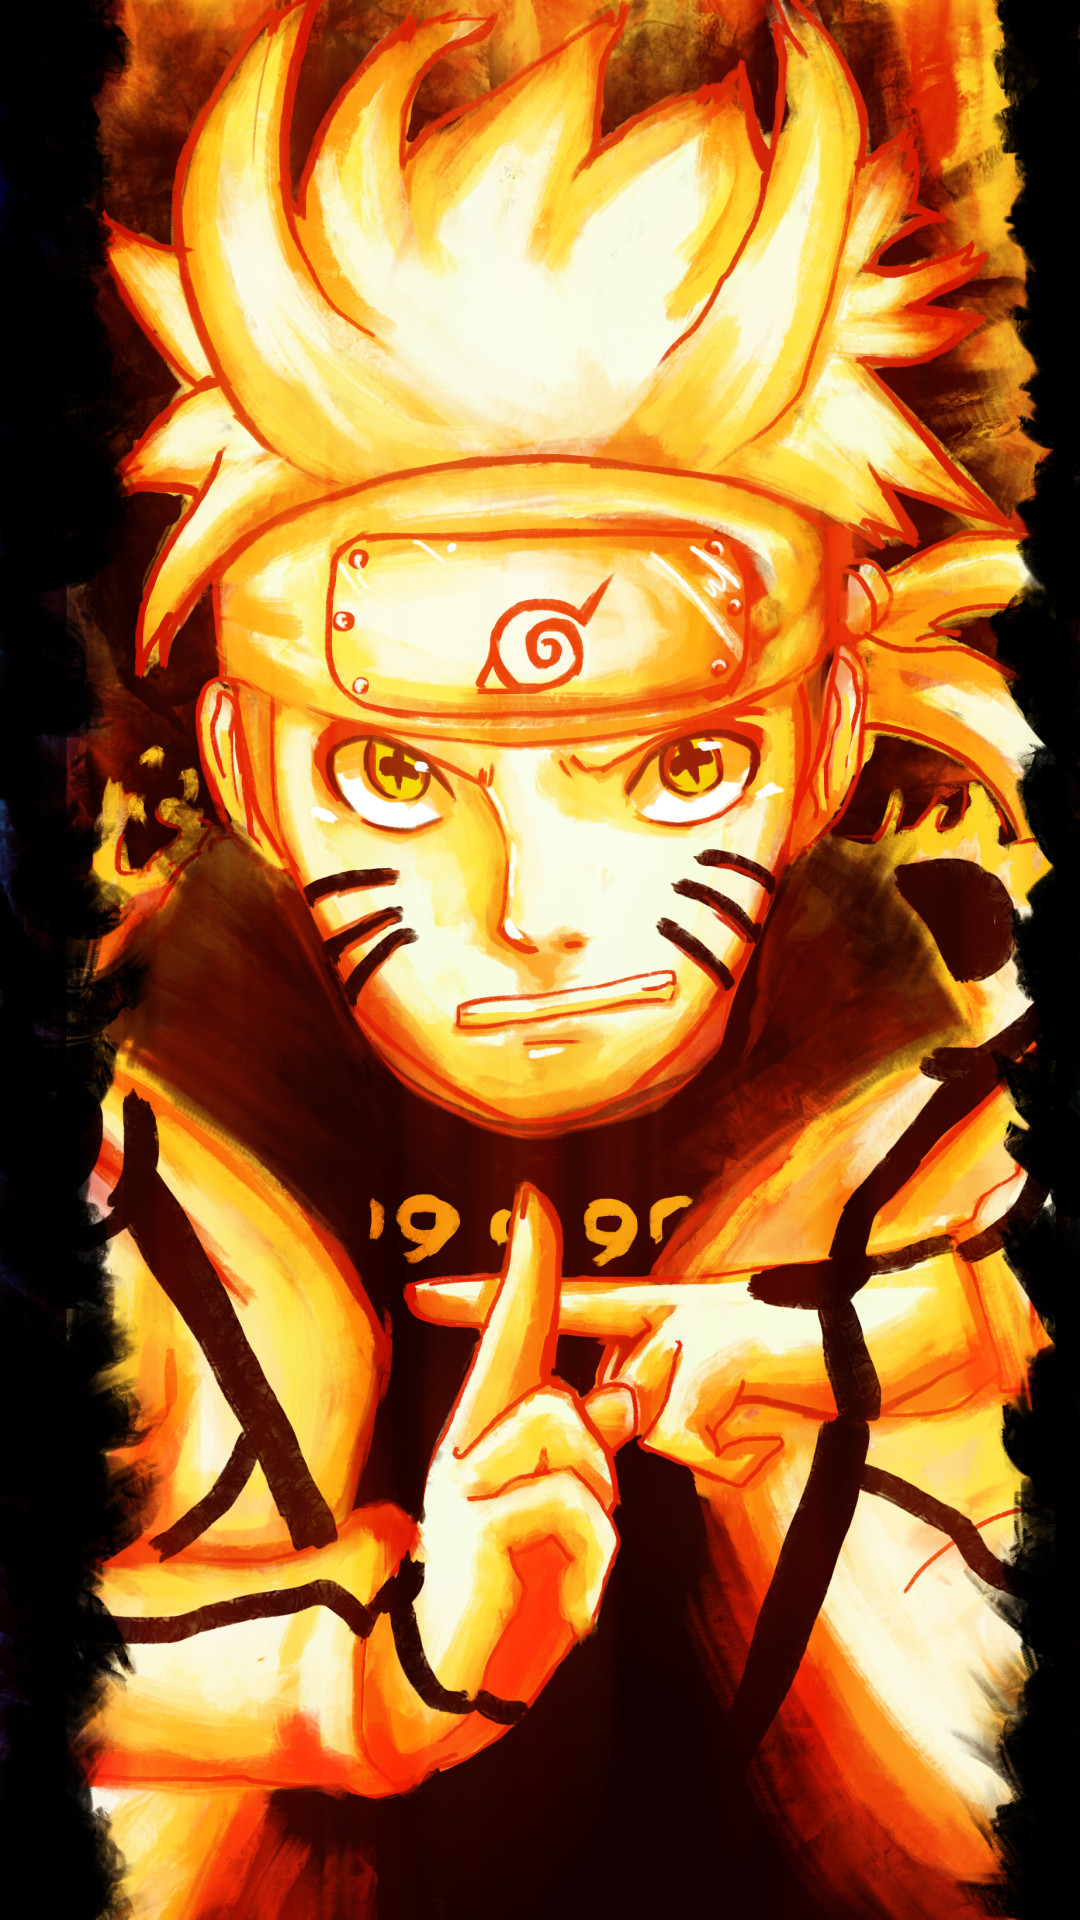 Anime Wallpaper Naruto Posted By Samantha Anderson